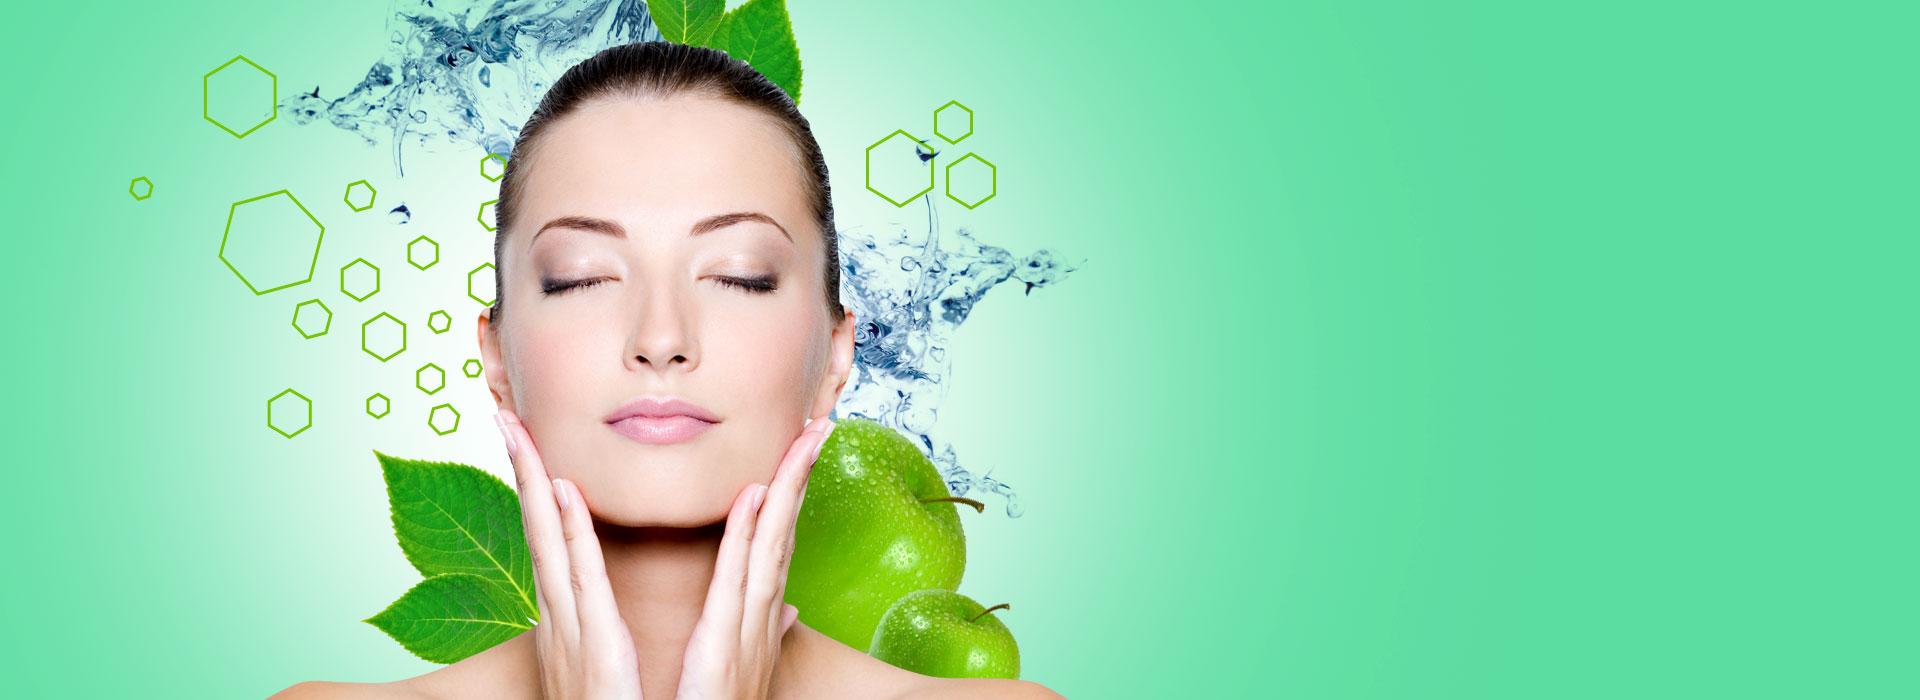 Anti-Aging Apple Stem Cells Rejuvenating Cream with CBD Oil now available at Vitaminy Health Boutique of Boca Raton